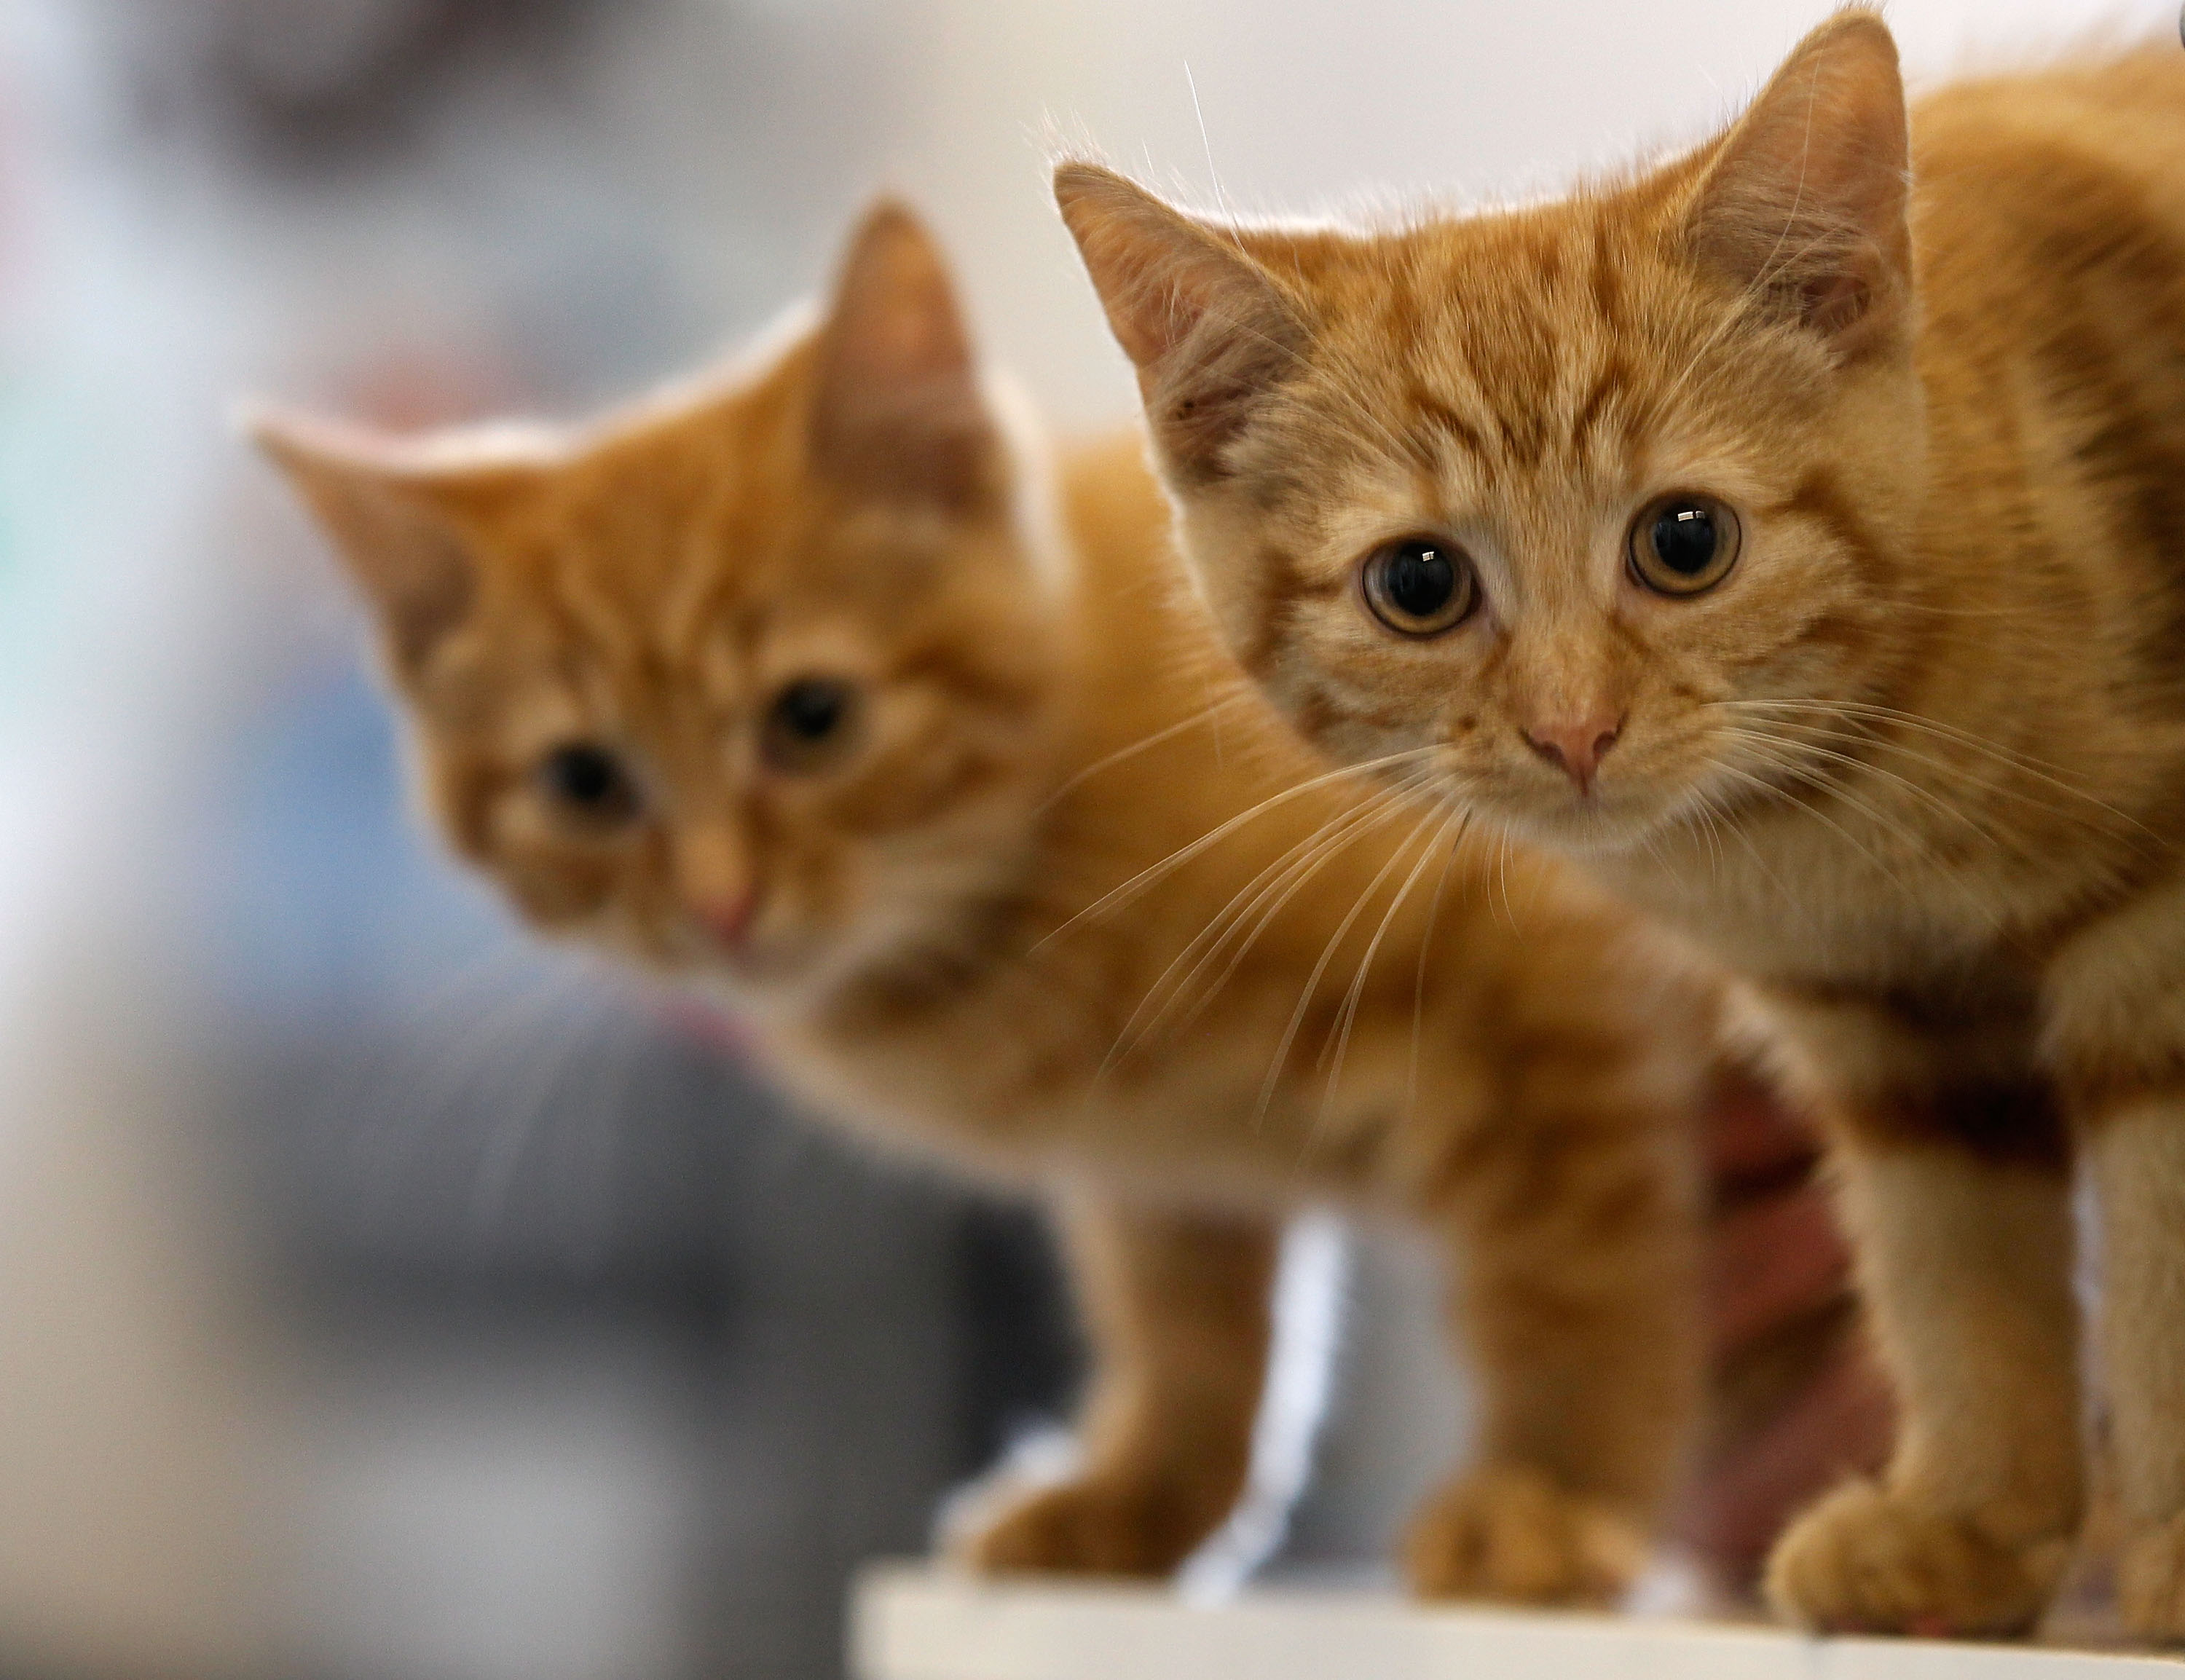 Milly, a 13-week-old kitten waits with her brother Charlie (L) to be re-homed at The Society for Abandoned Animals Sanctuary in Sale, Manchester which is facing an urgent cash crisis and possible closure on July 27, 2010 in Manchester, England.